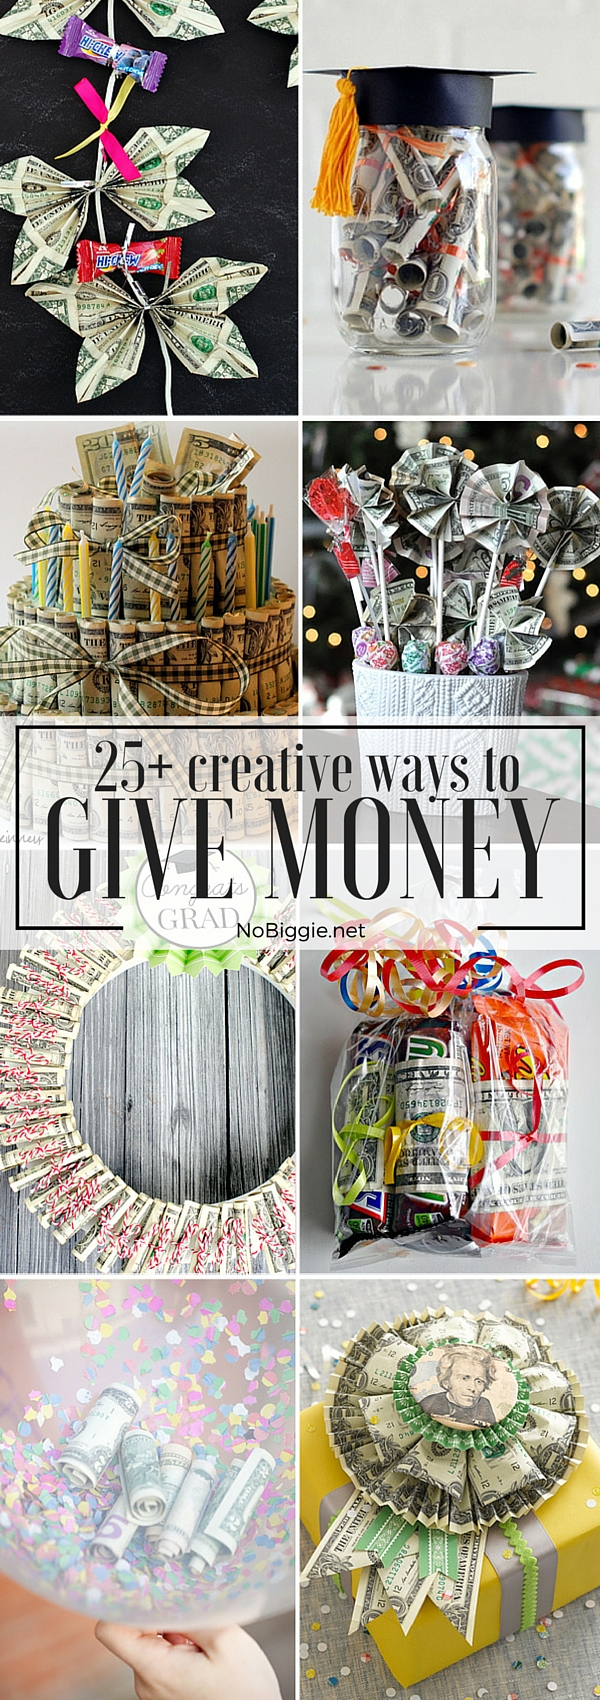 25+ Creative Ways to Give Money | NoBiggie.net